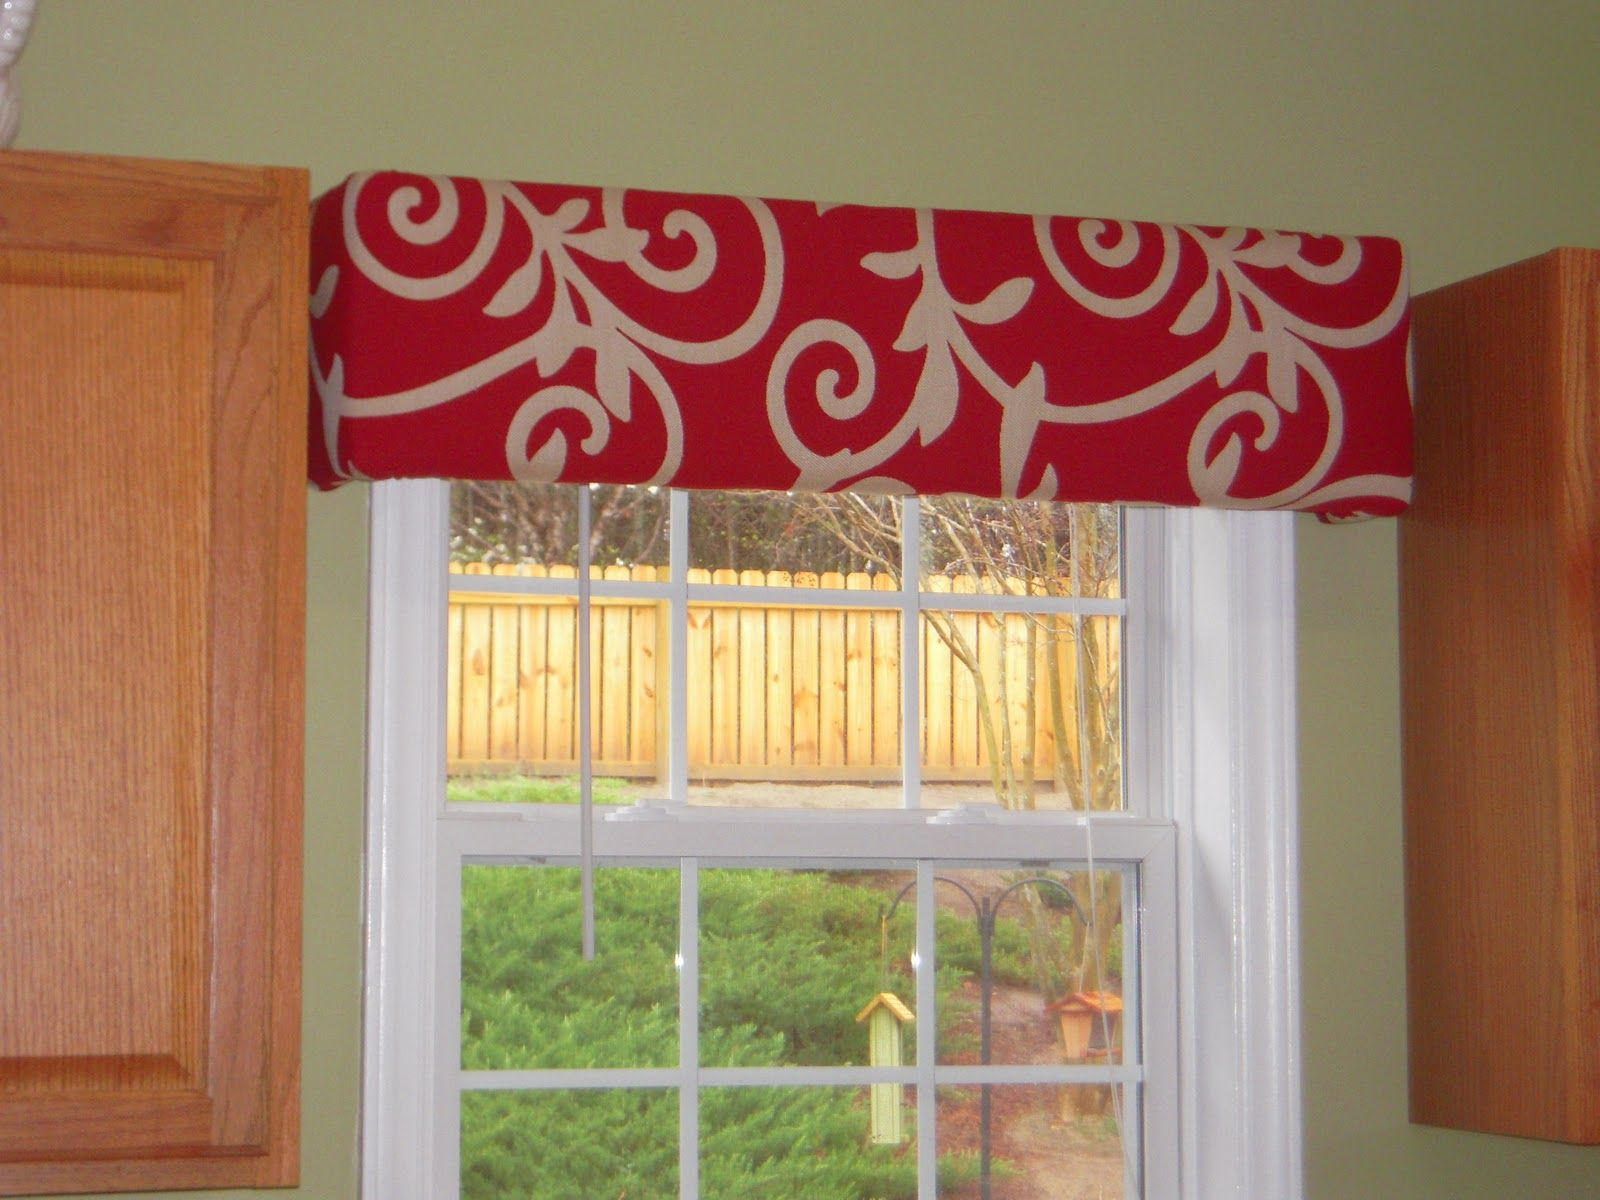 Kitchen curtains window treatments need to spice up your windows try cornice boards a simple - Window treatment ideas for kitchen ...